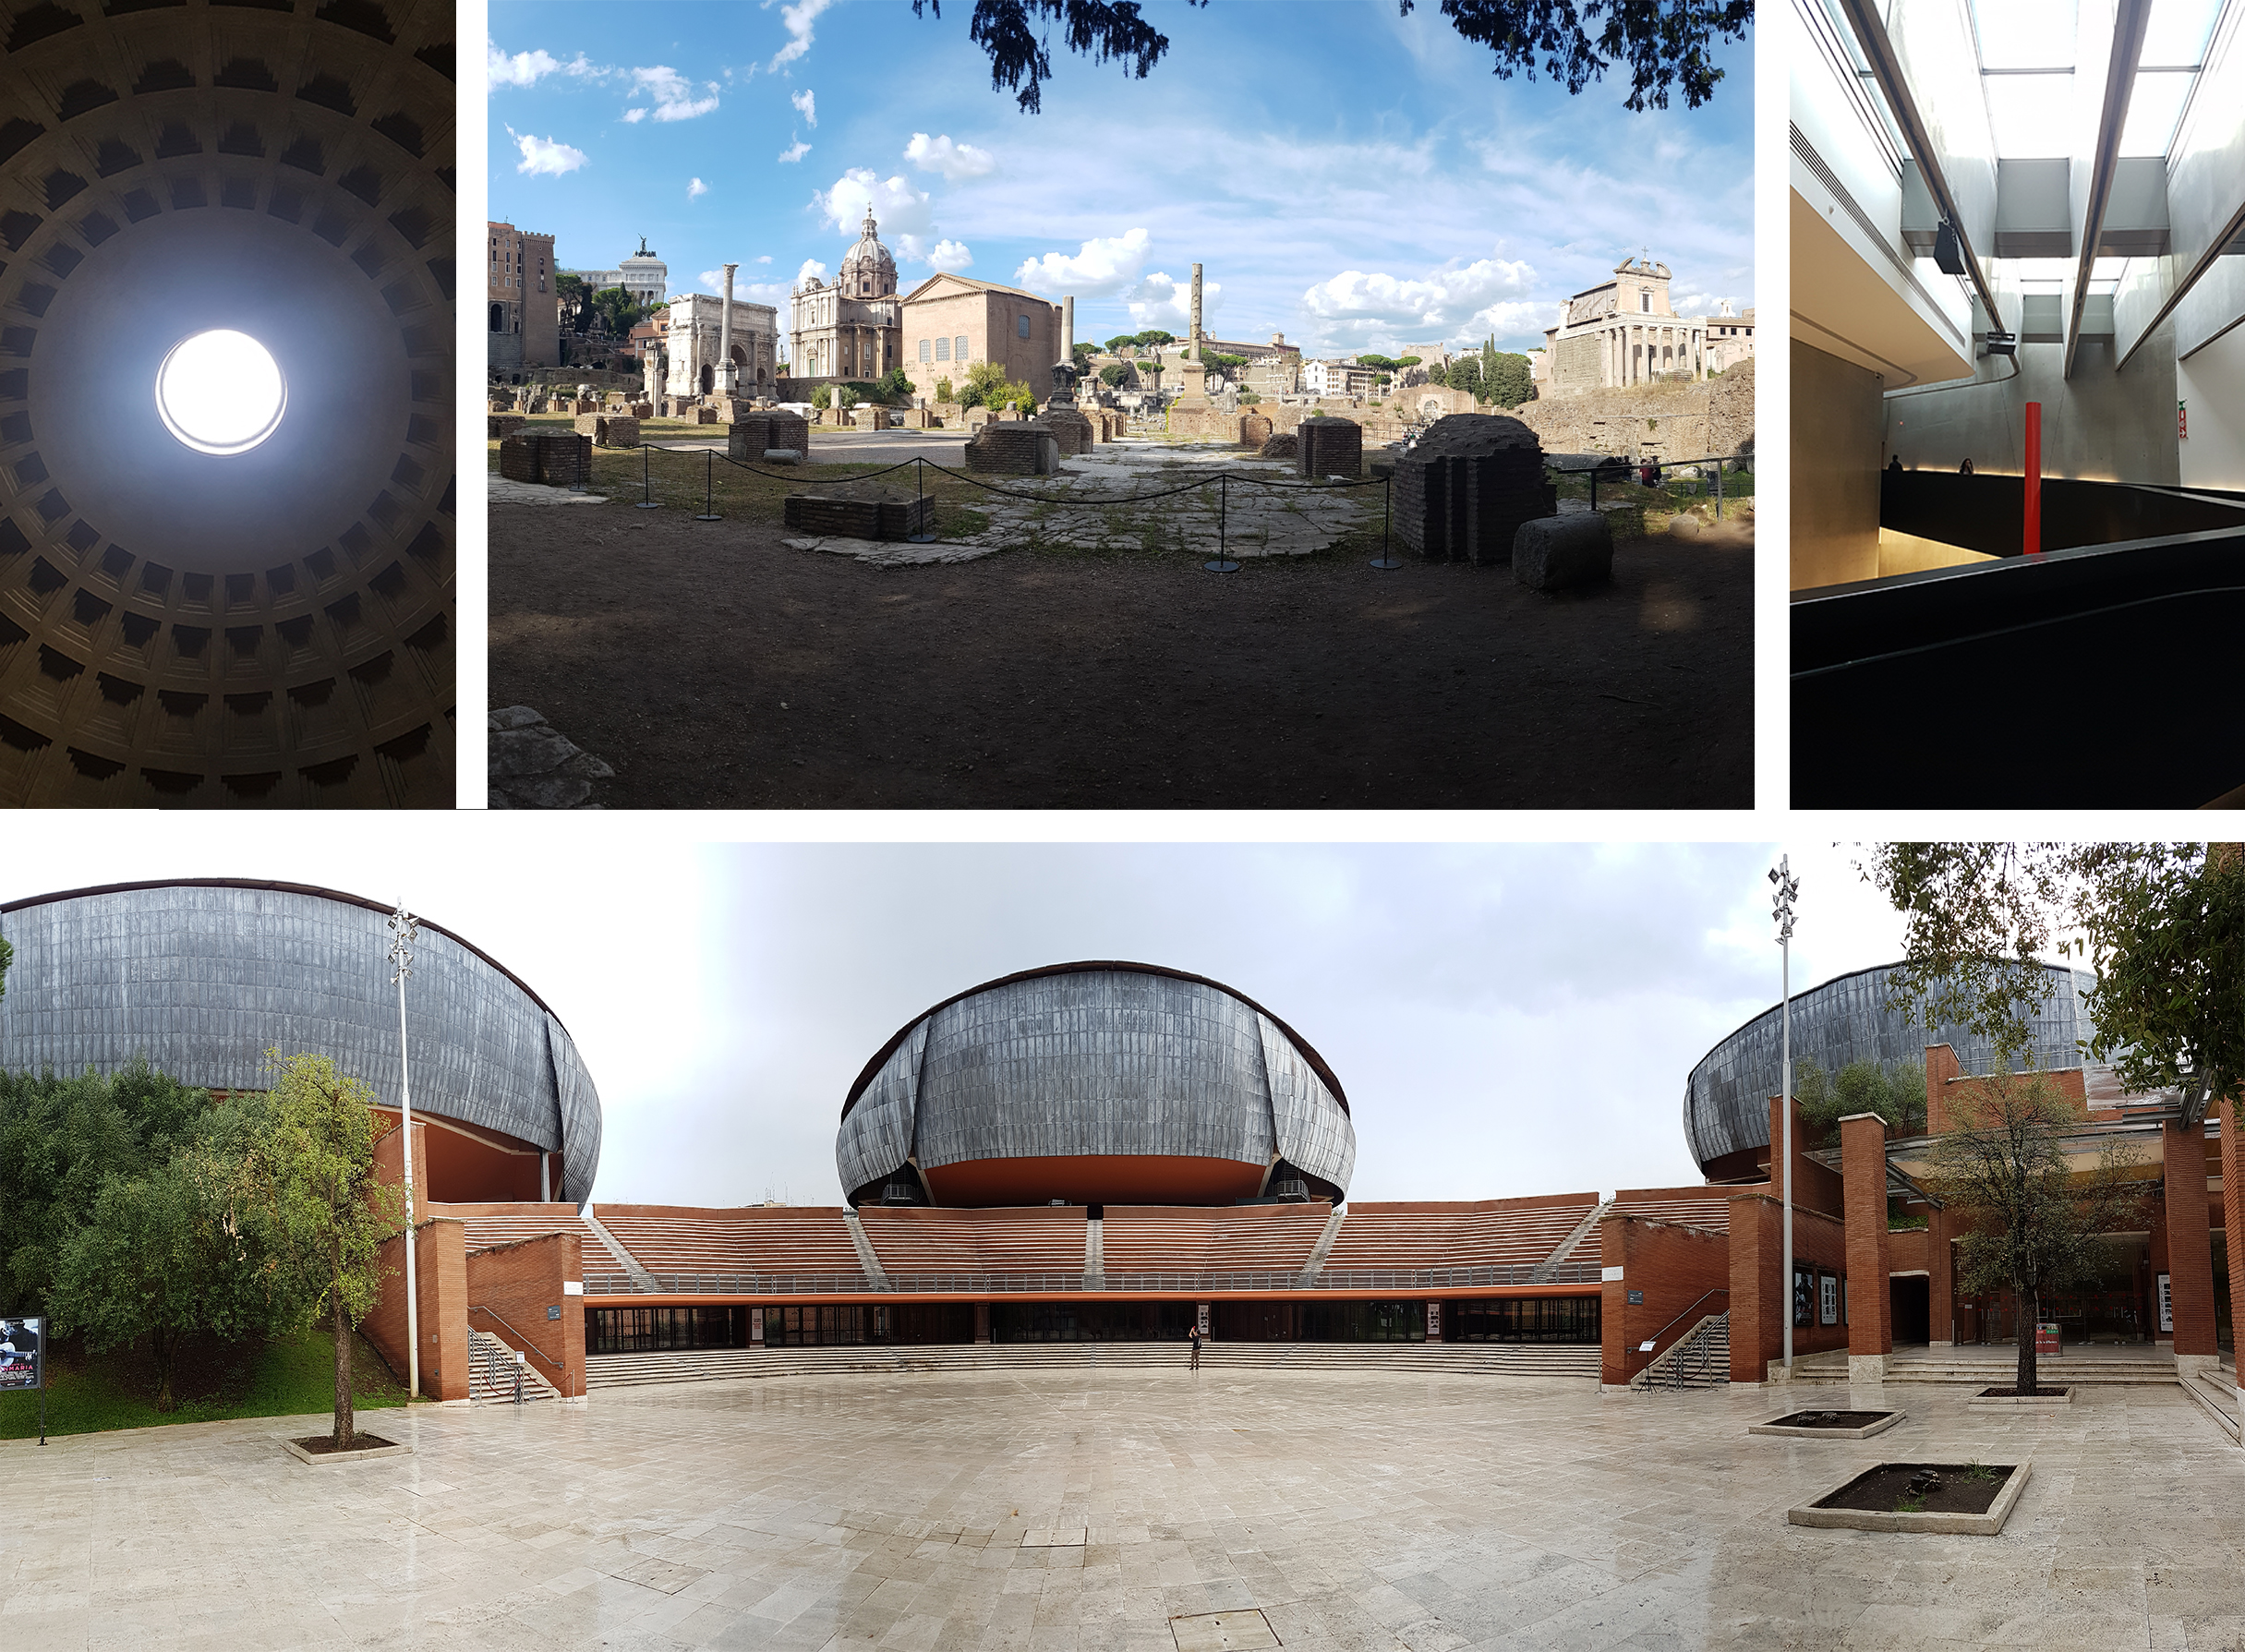 Left to right, top to bottom: Oculus @ The Pantheon, The Roman Forum, MAXXI Museum, Parco della Musica